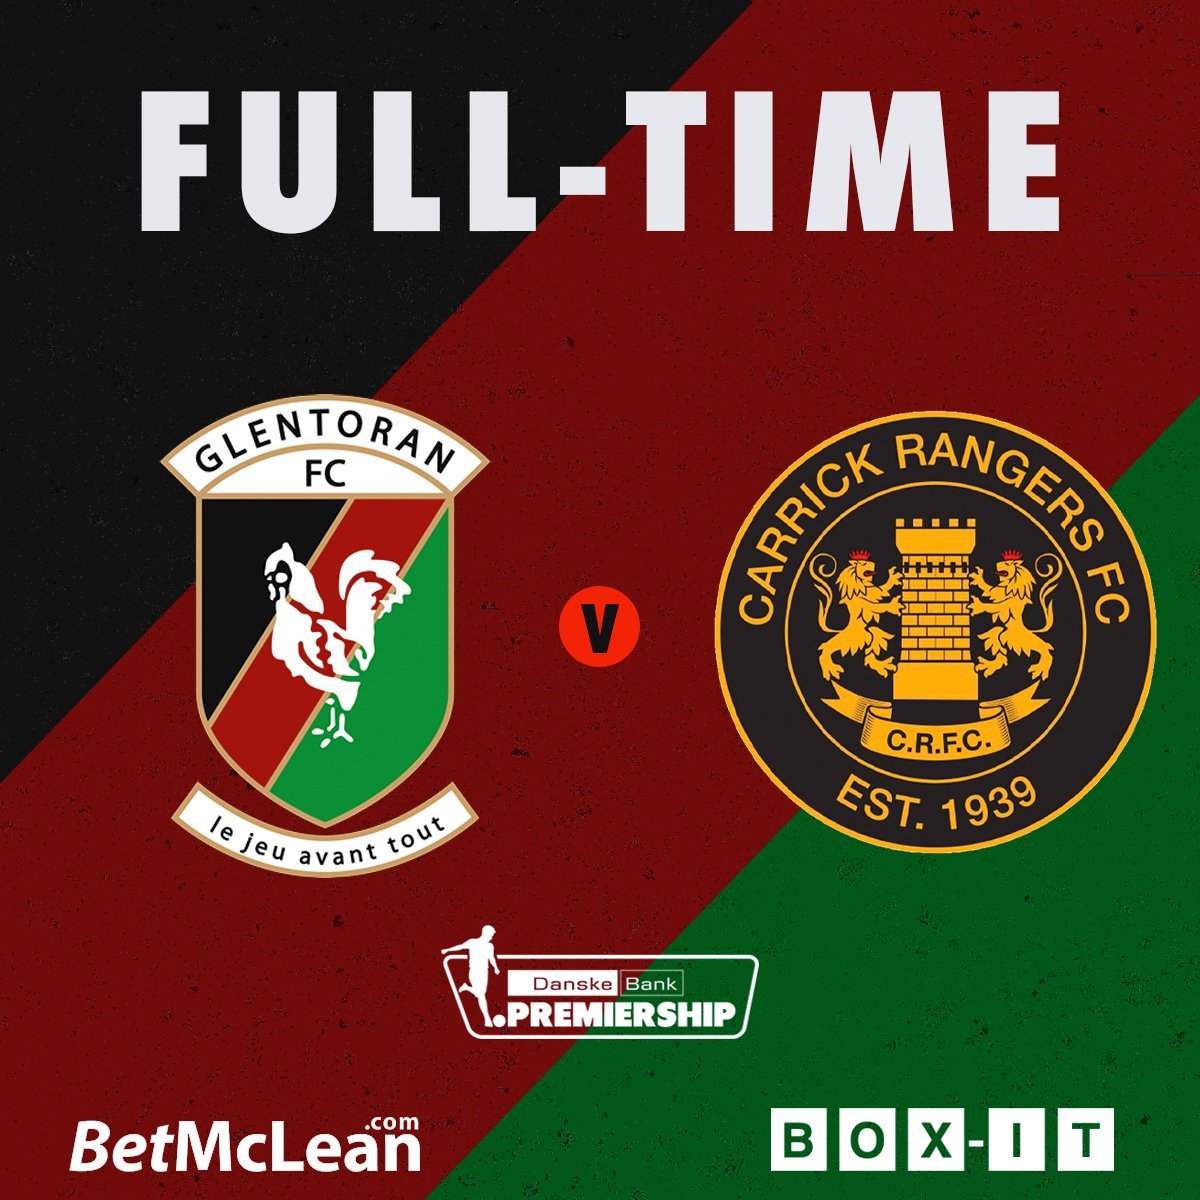 FULL-TIME   GLENTORAN 2-0 CARRICK The 10 men grab 3 points with goals from Jay Donnelly and Robbie McDaid #COYG